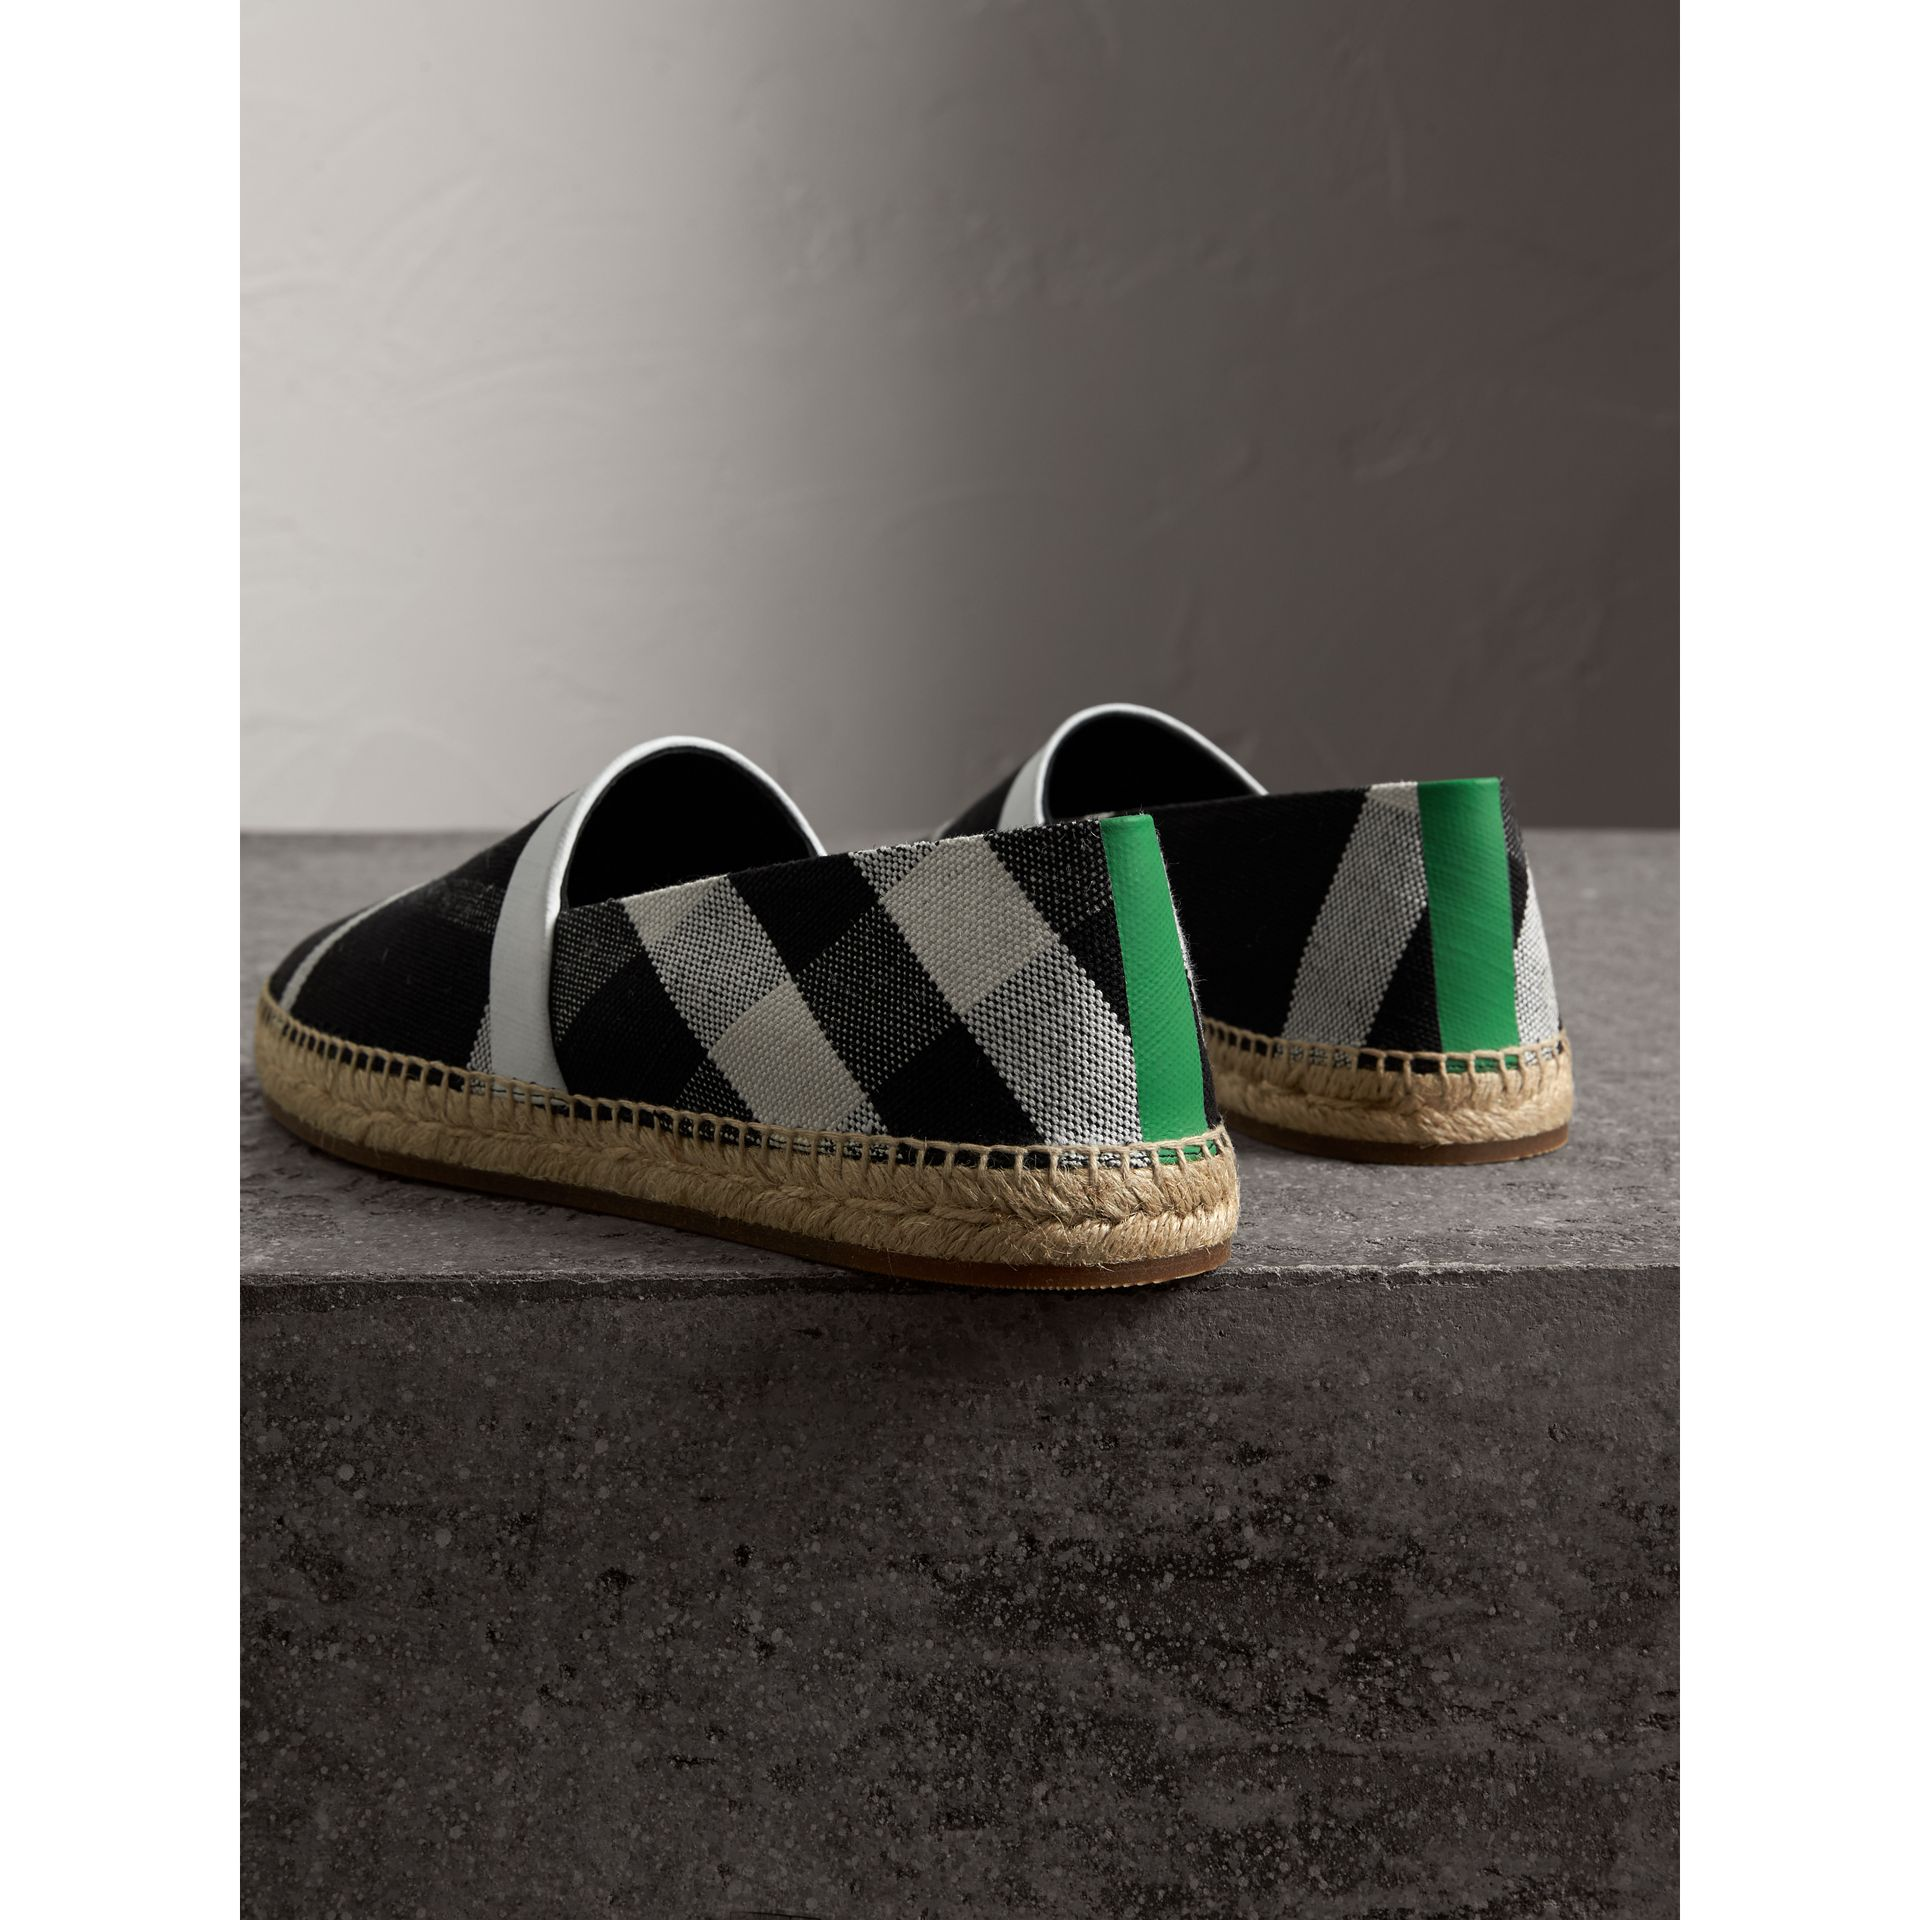 Check Cotton Canvas Seam-sealed Espadrilles in Black - Men | Burberry United Kingdom - gallery image 3